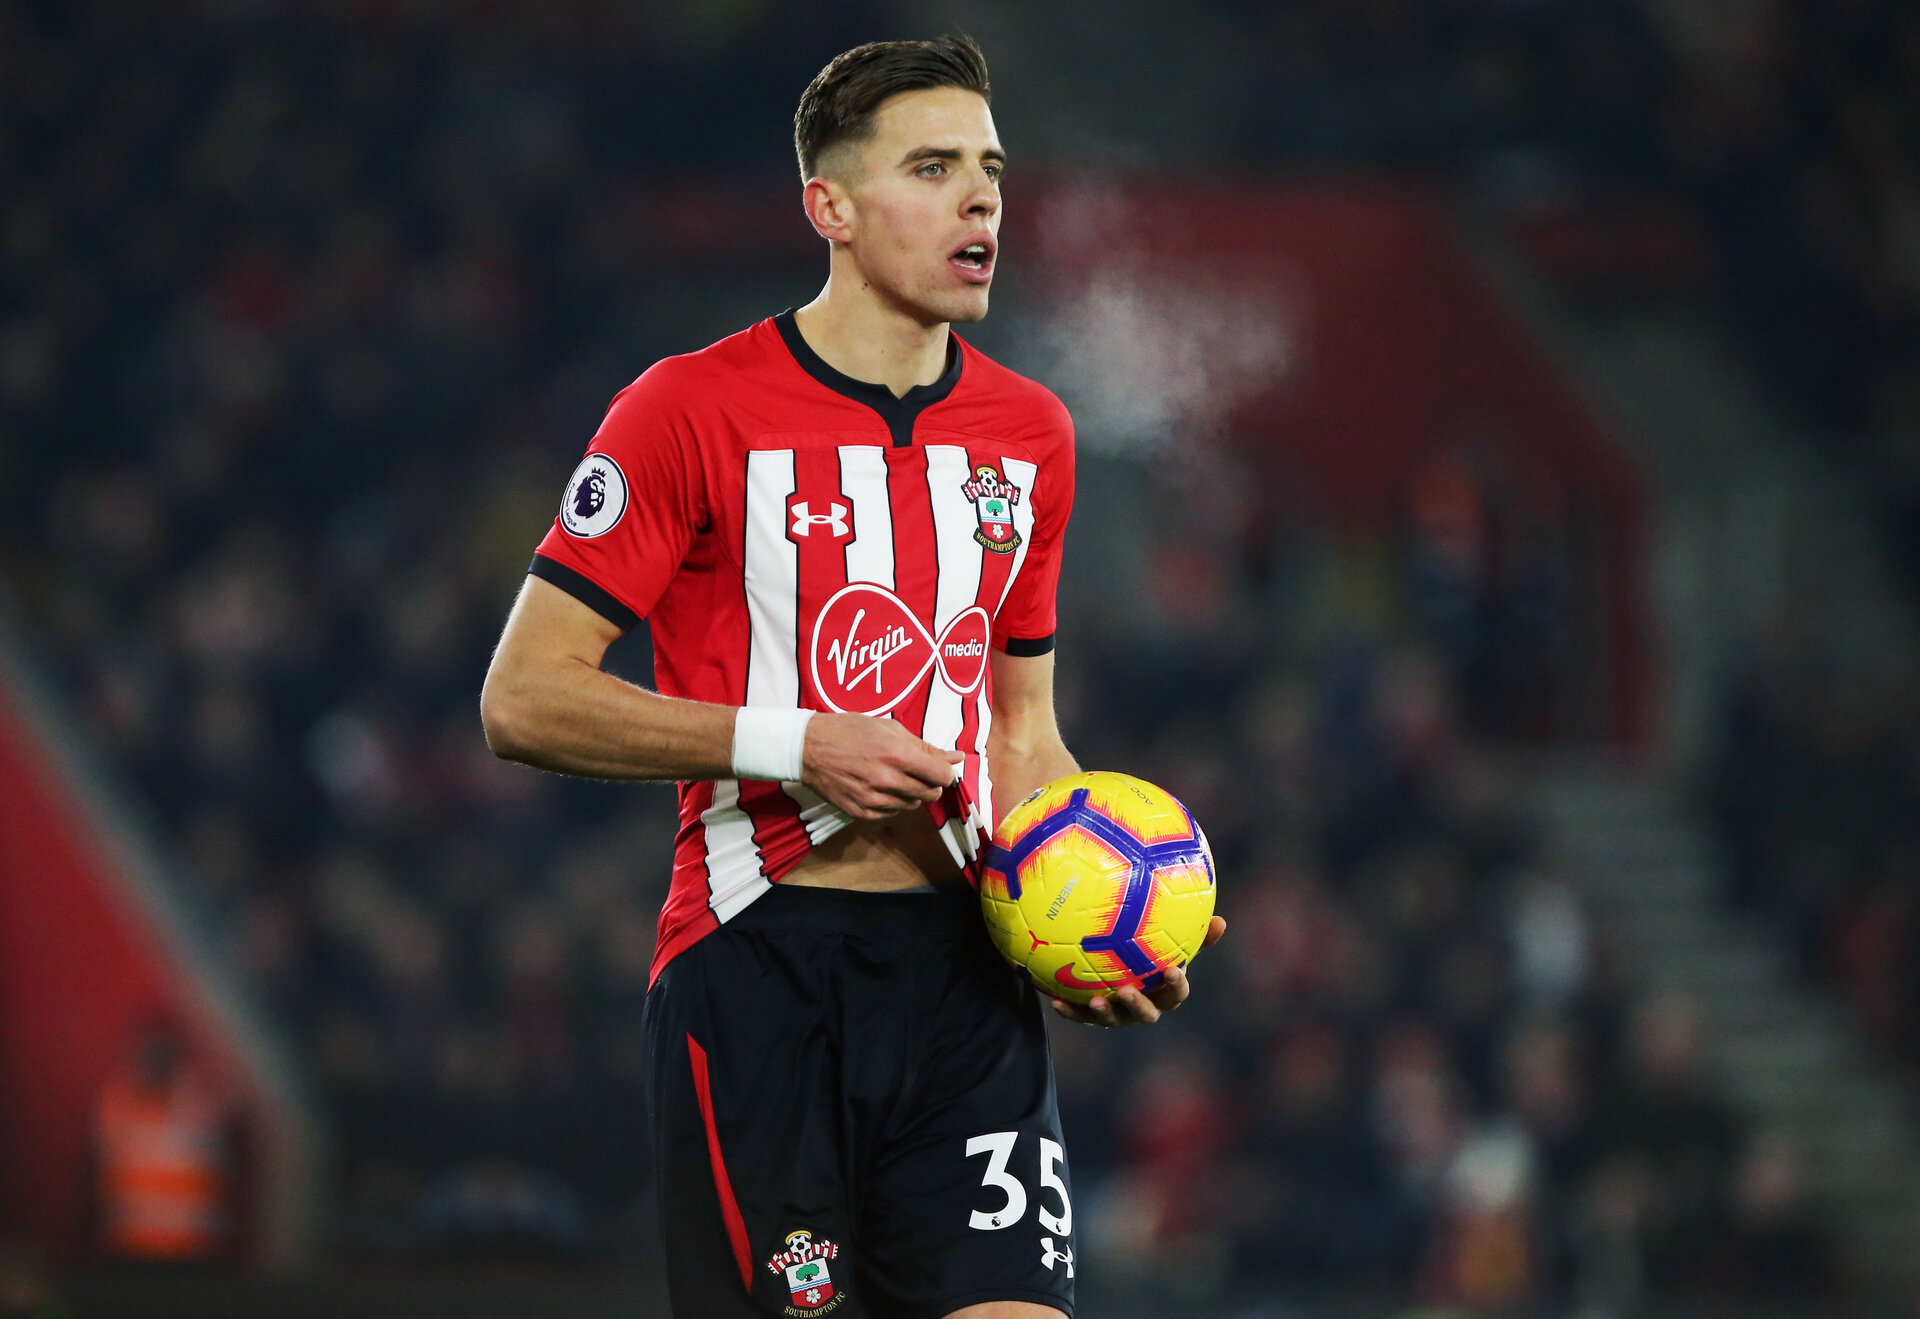 SOUTHAMPTON, ENGLAND - DECEMBER 27: Jan Bednarek during the Premier League match between Southampton FC and West Ham United at St Mary's Stadium on December 26, 2018 in Southampton, United Kingdom. (Photo by Chris Moorhouse/Southampton FC via Getty Images)